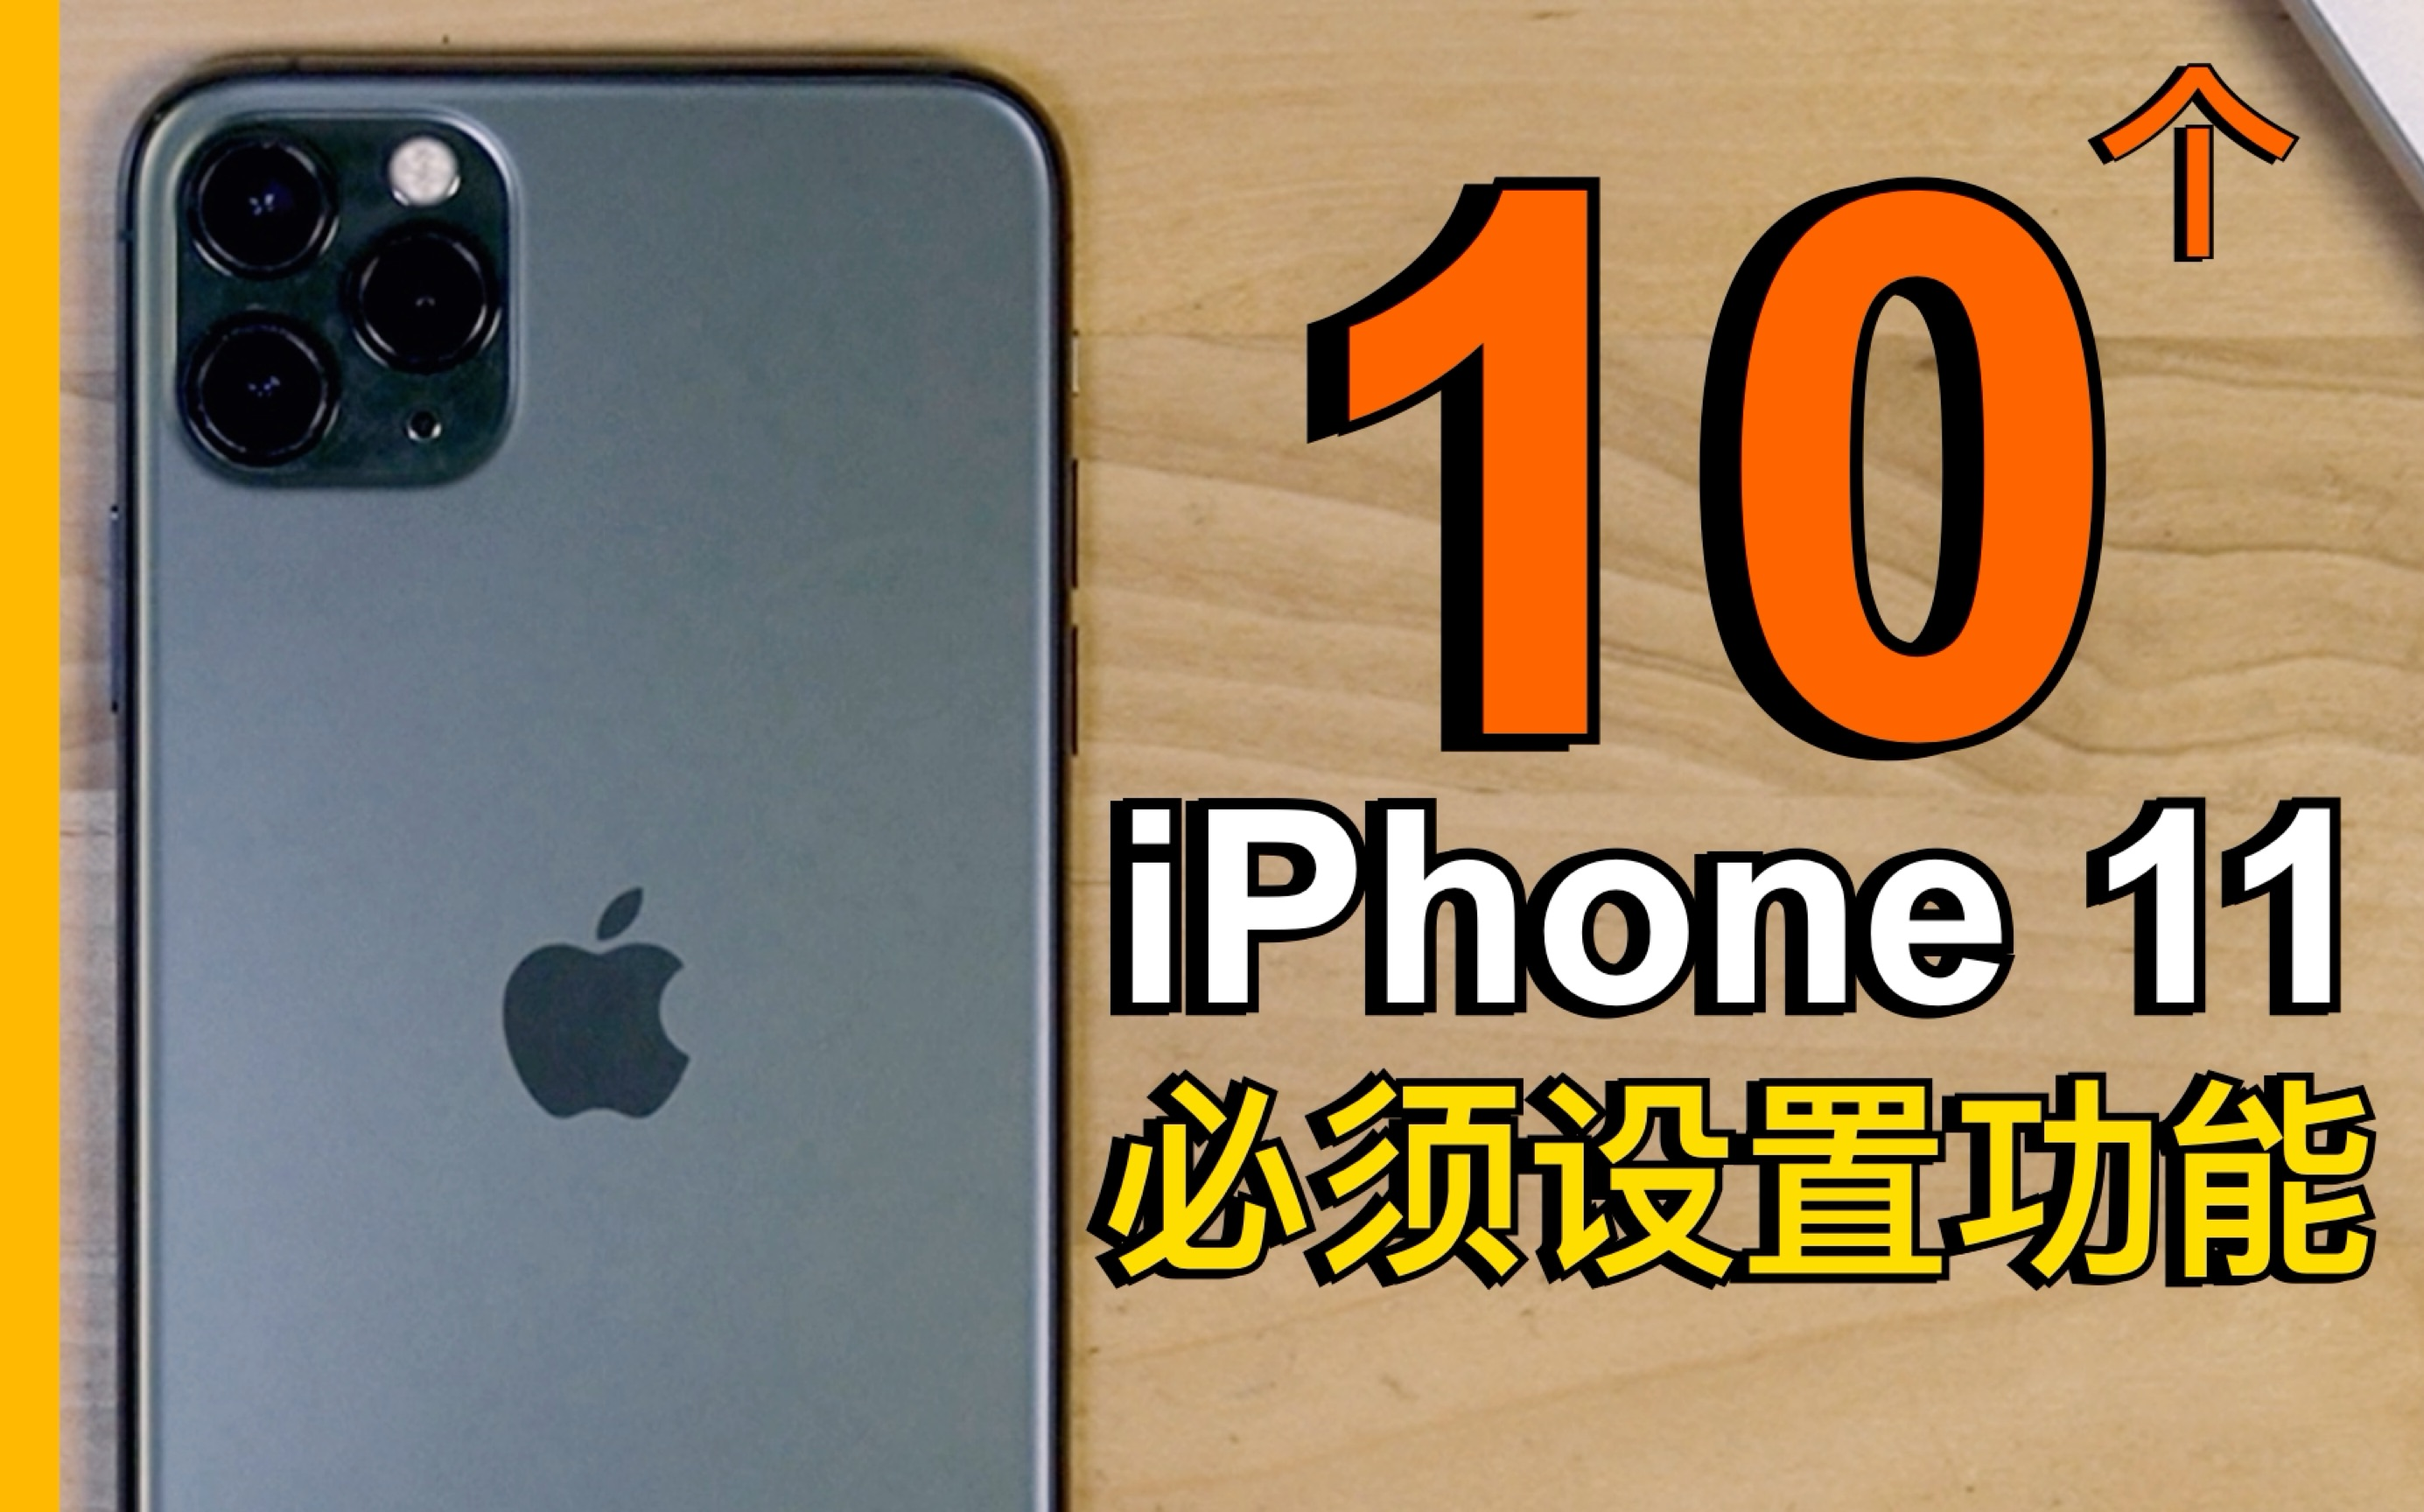 ��iPhone 11��10������iPhone 11�����Ҫ���е�����feat ���ع���